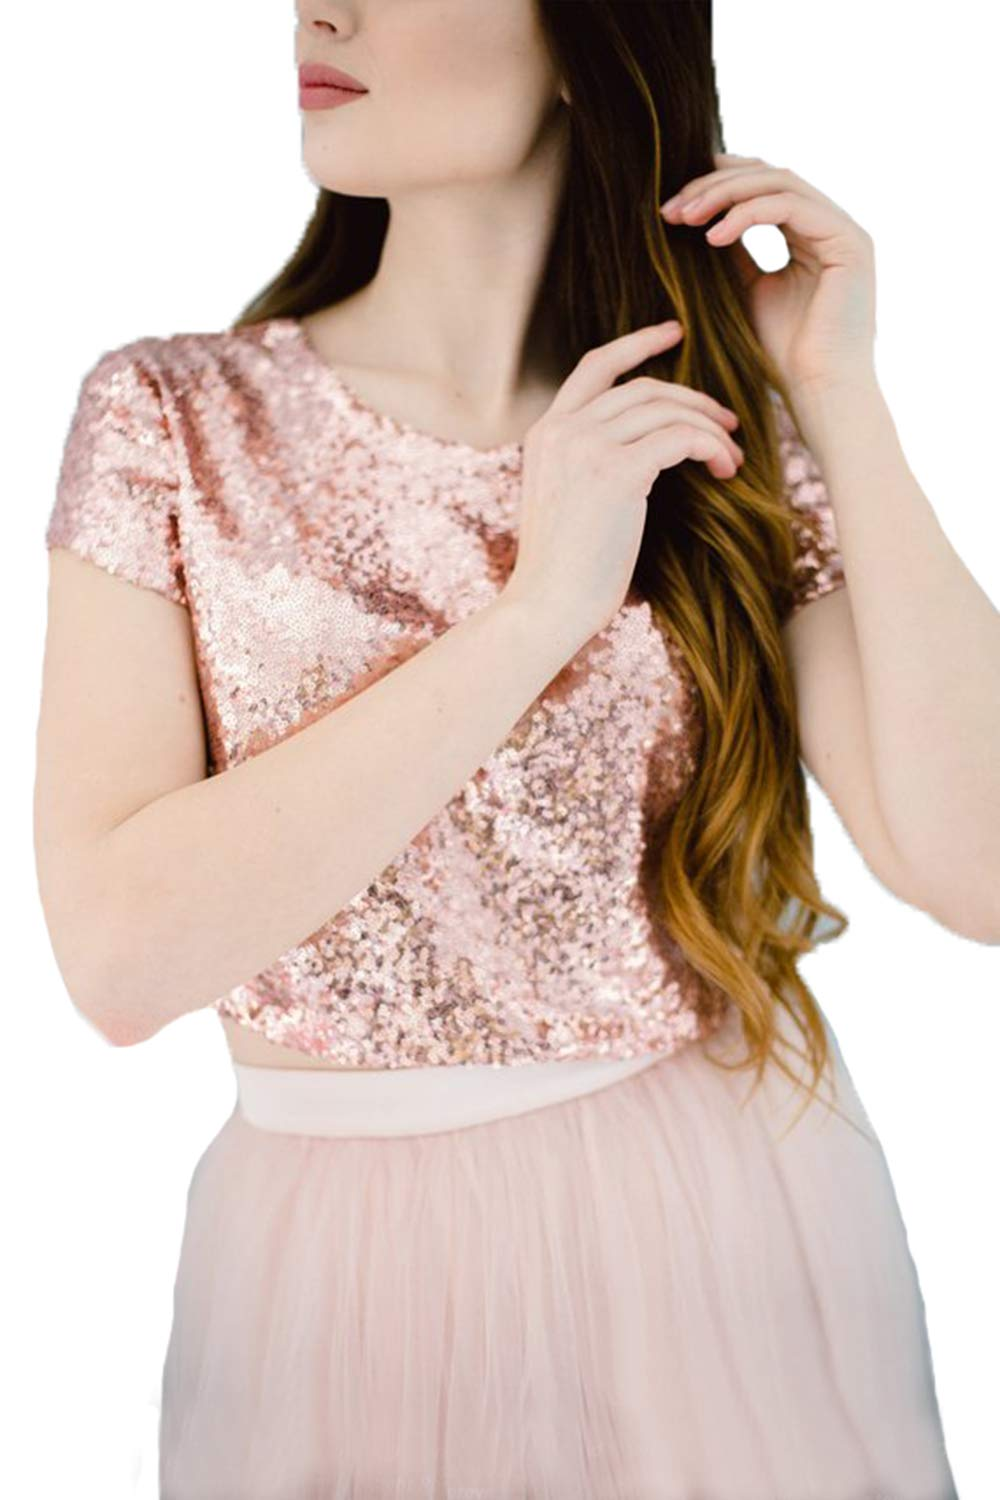 Heypen Women's Sparkly Sequins Tops Shimmer Glam Sequined Party Blouse Jackets Rose Gold